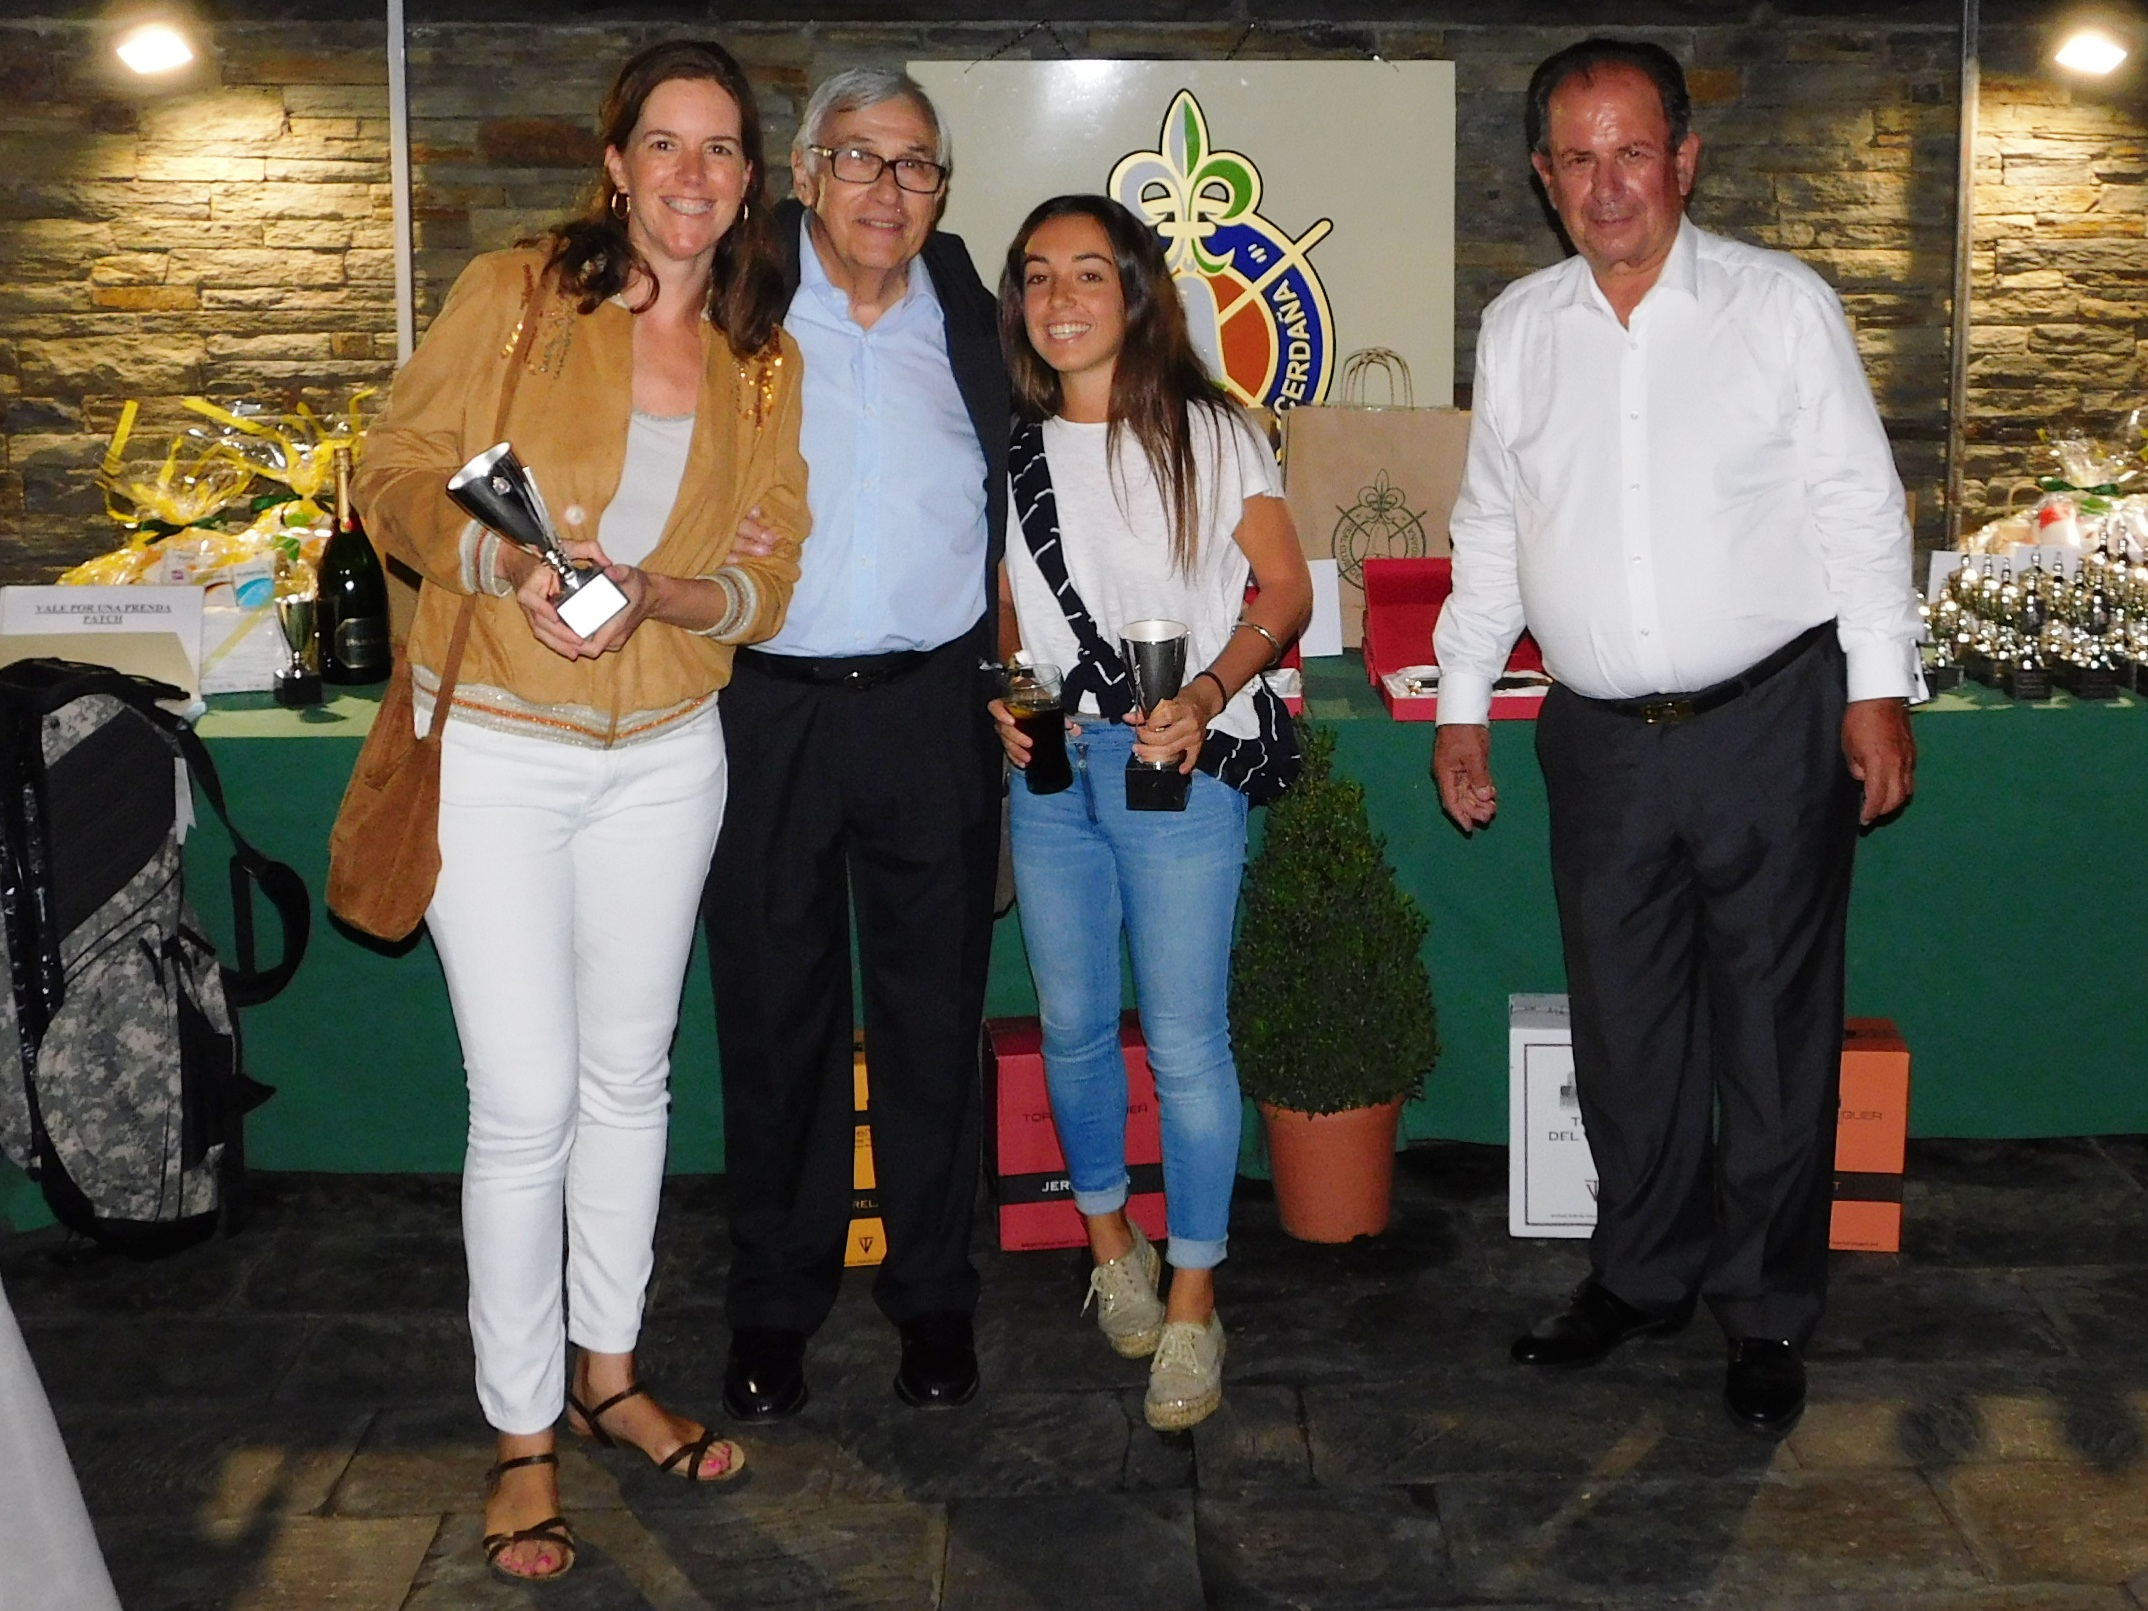 Real club de golf la cerdanya torneo